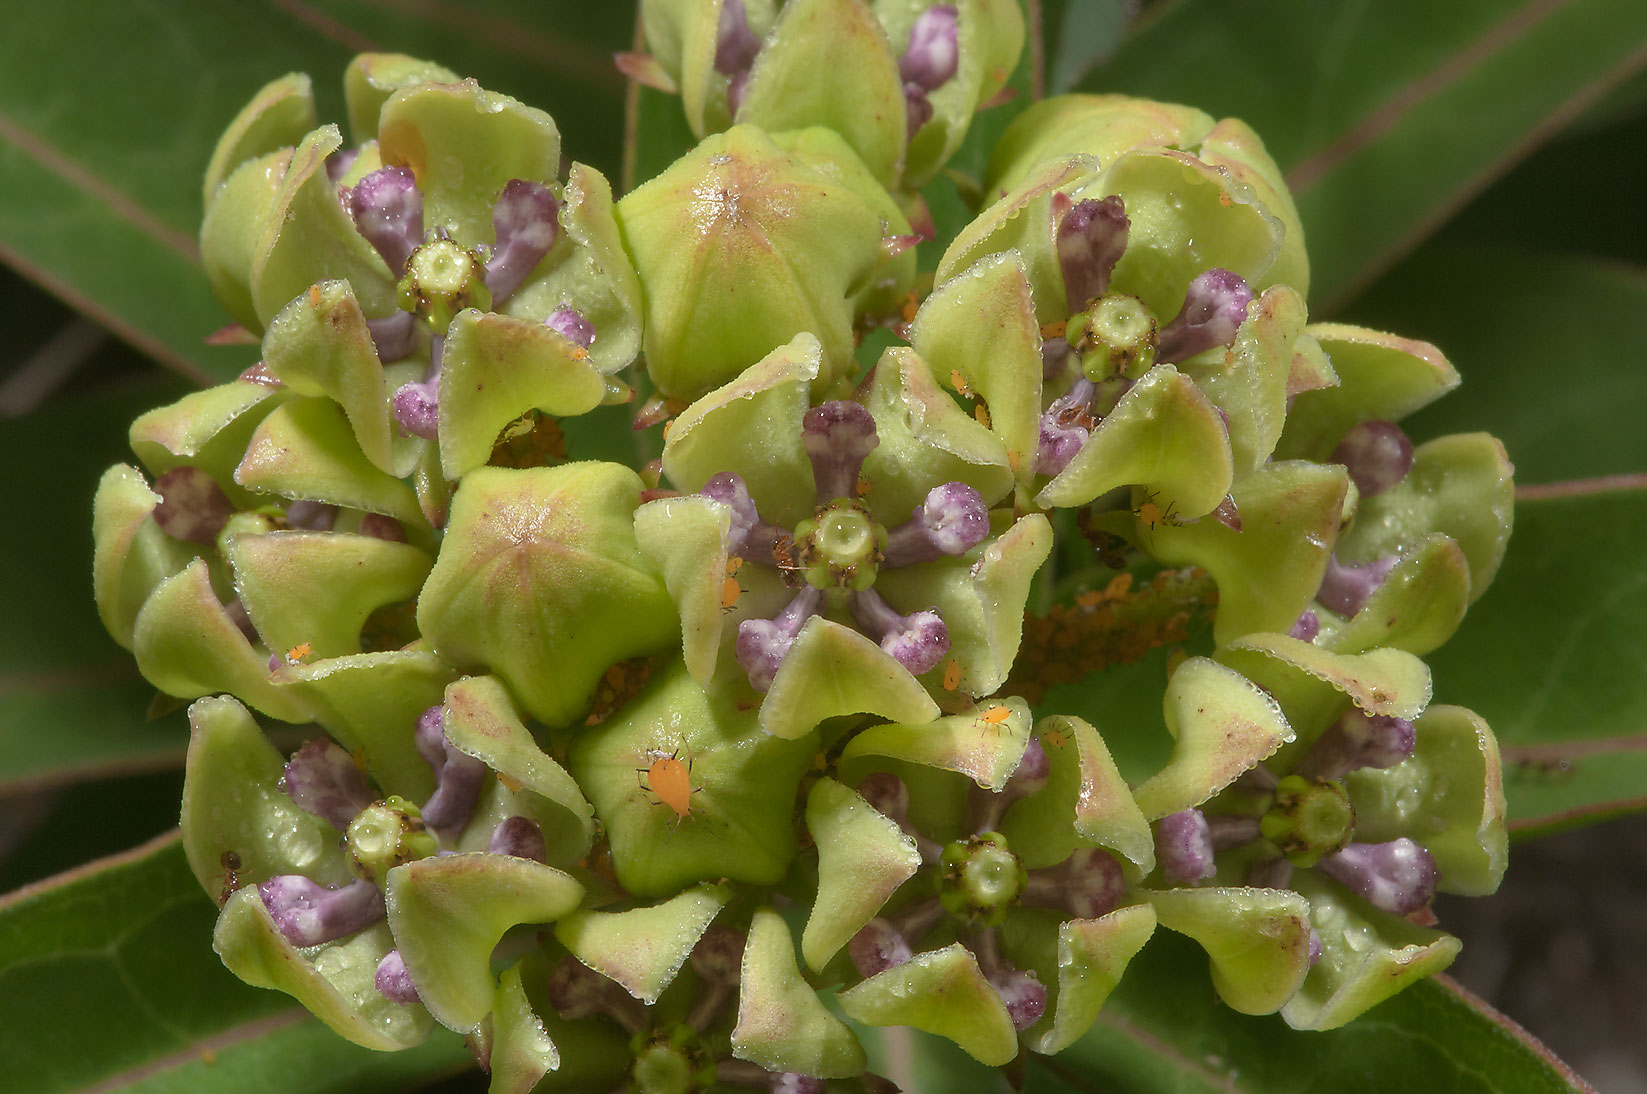 Green milkweed (Antelope horns, asclepias viridis...State Historic Site. Washington, Texas